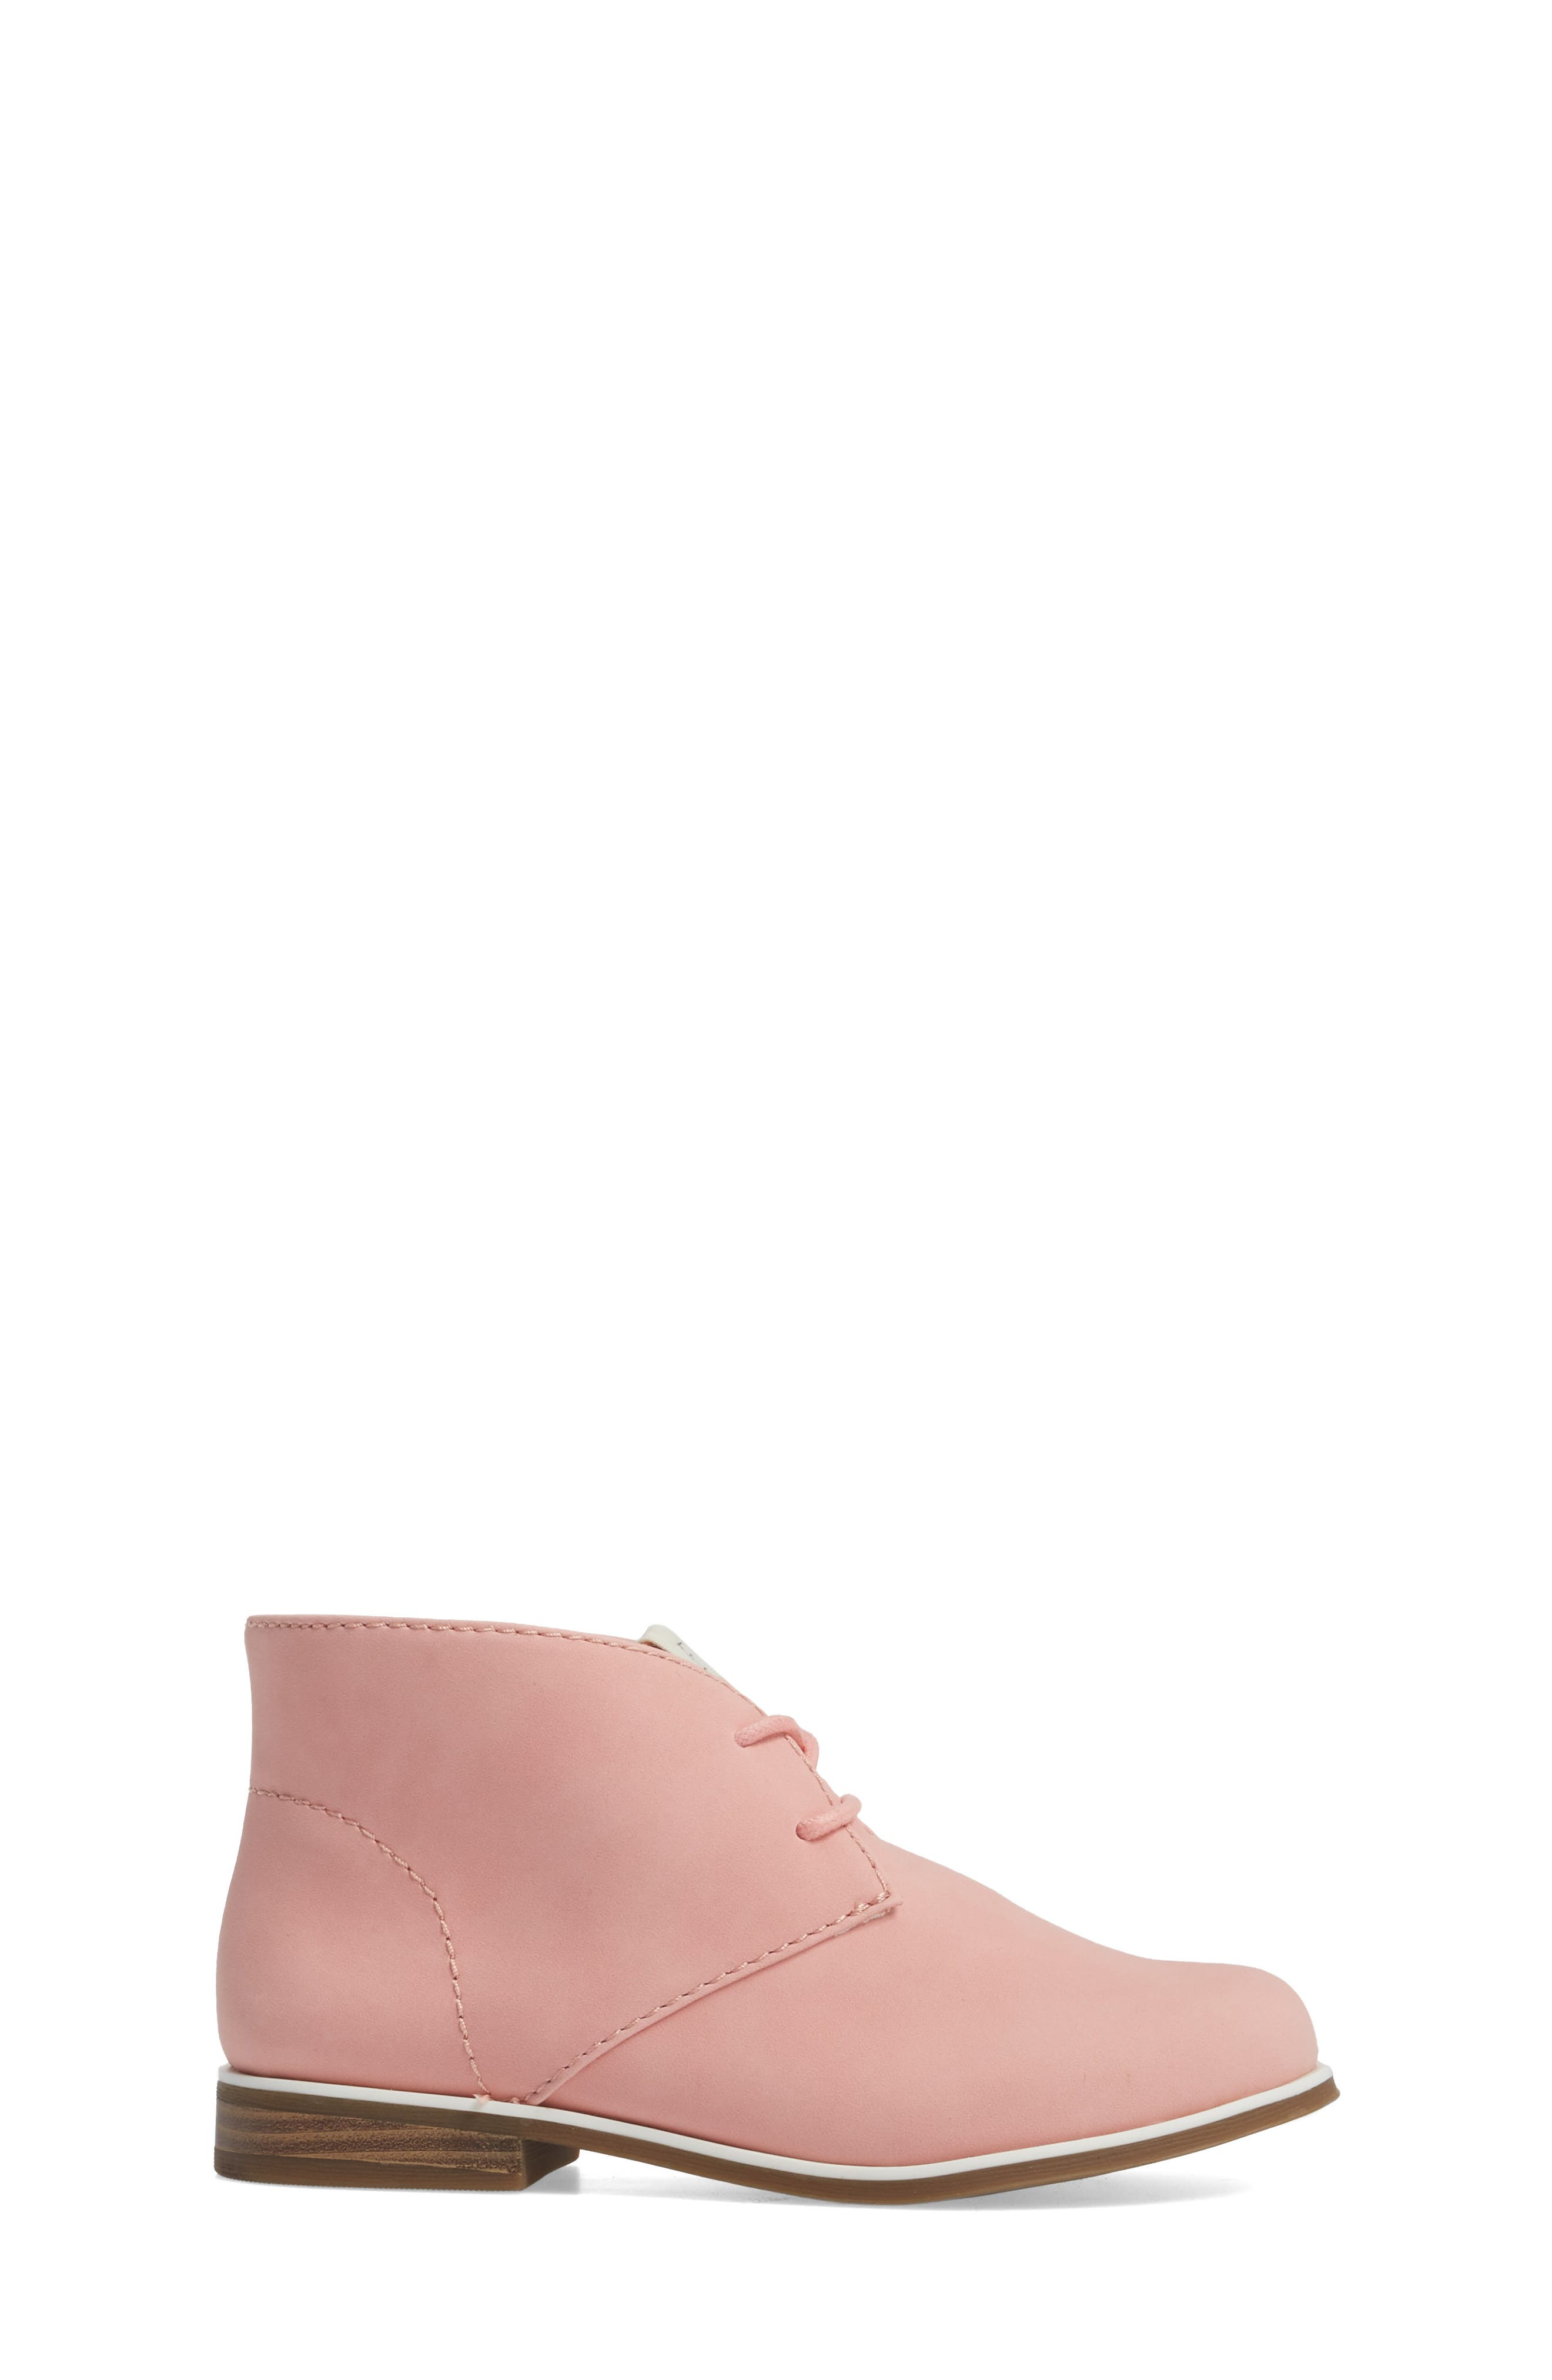 Korie Chukka Bootie,                             Alternate thumbnail 3, color,                             Poppy Pink Suede